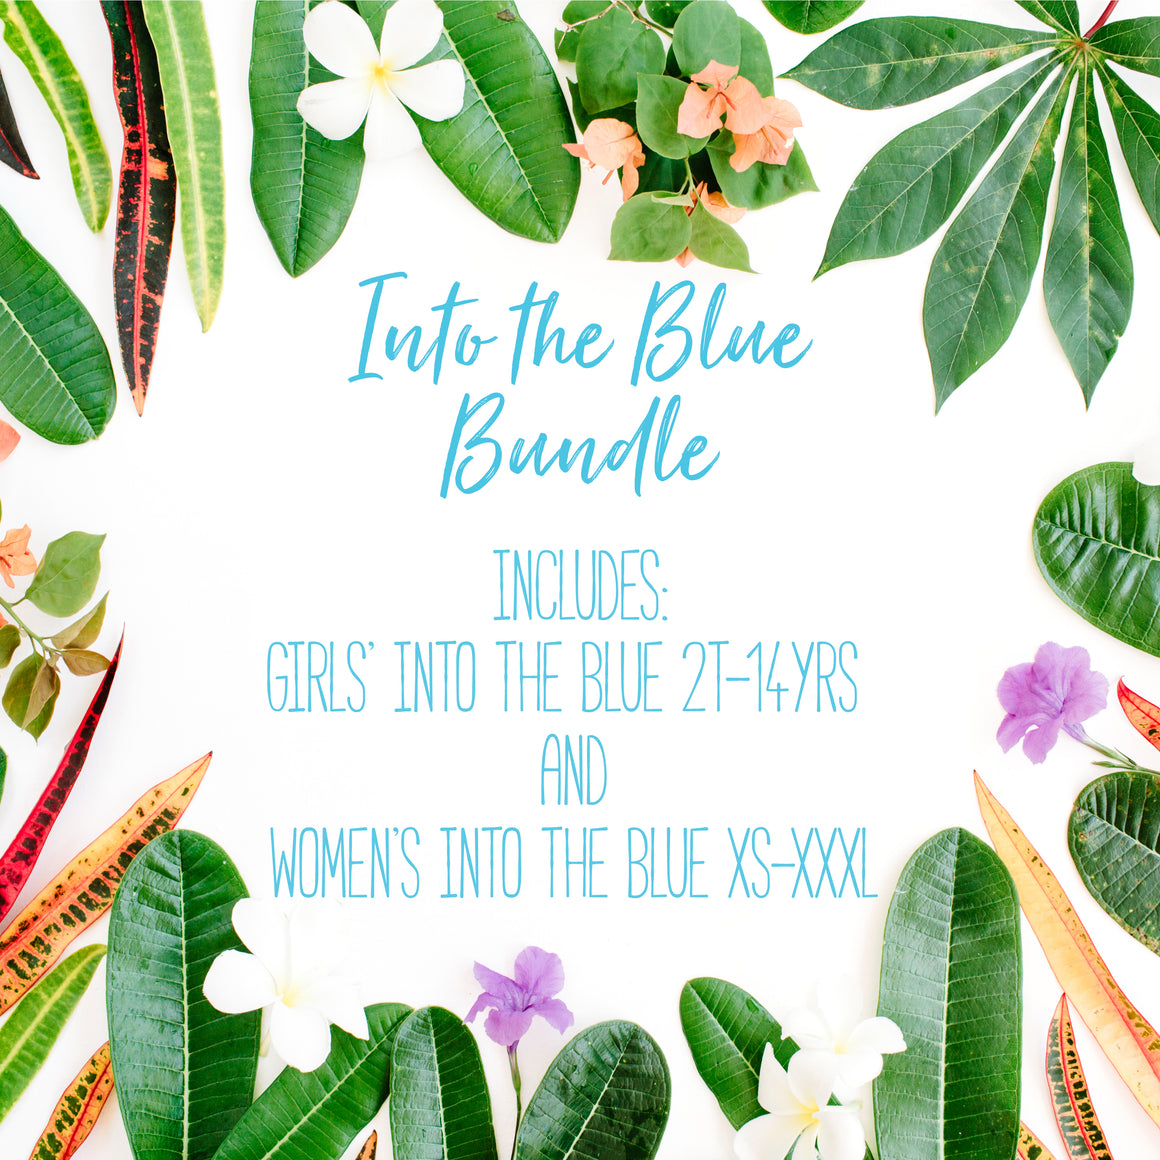 Into the Blue Bundle